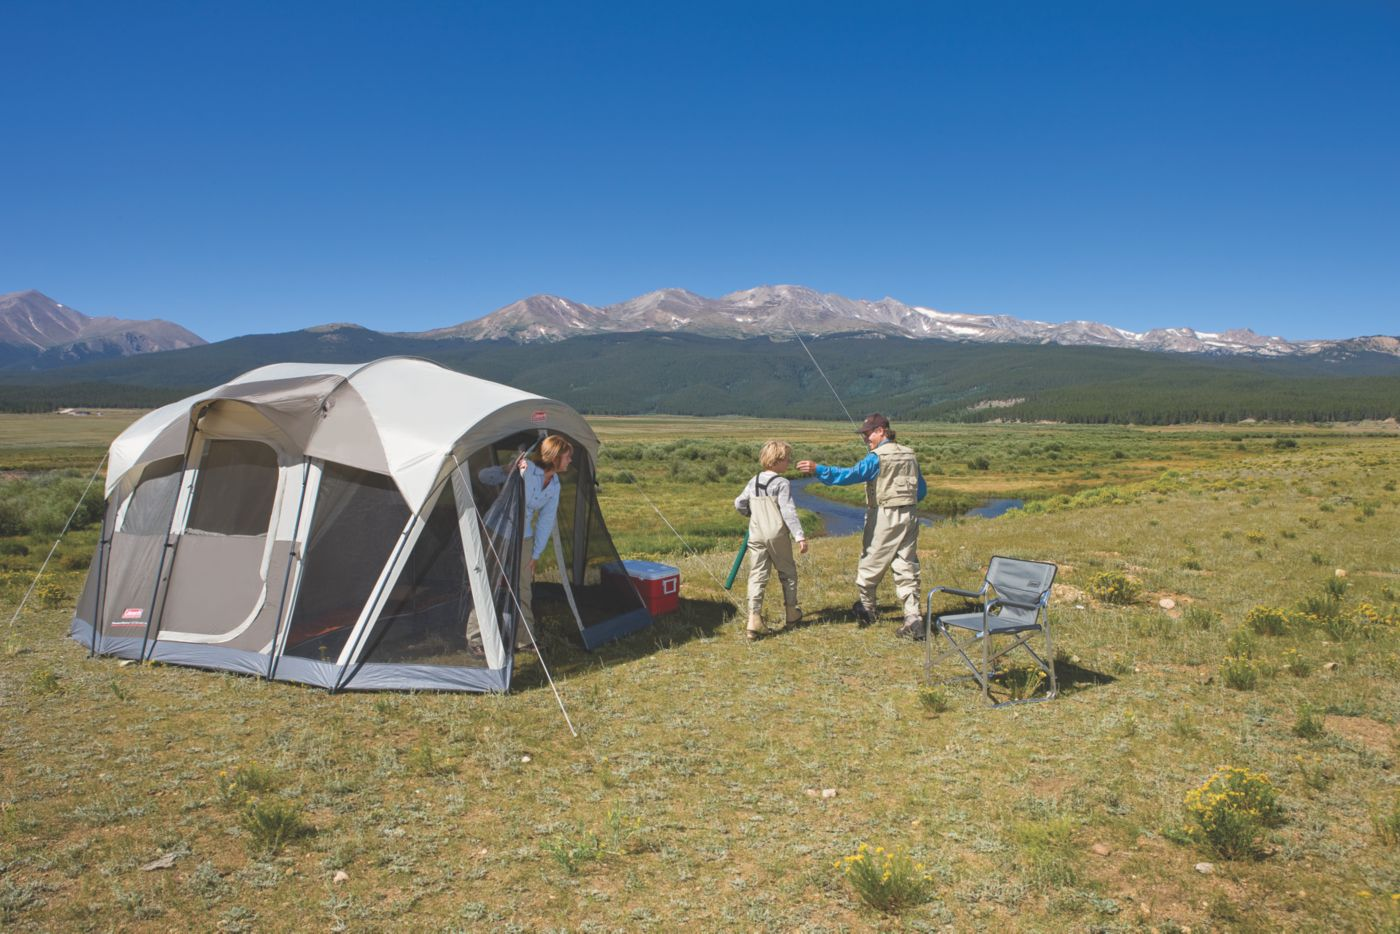 ... WeatherMaster® 6-Person Tent with Screen Room ...  sc 1 st  Coleman & WeatherMaster® 6-Person Tent with Screen Room - USA